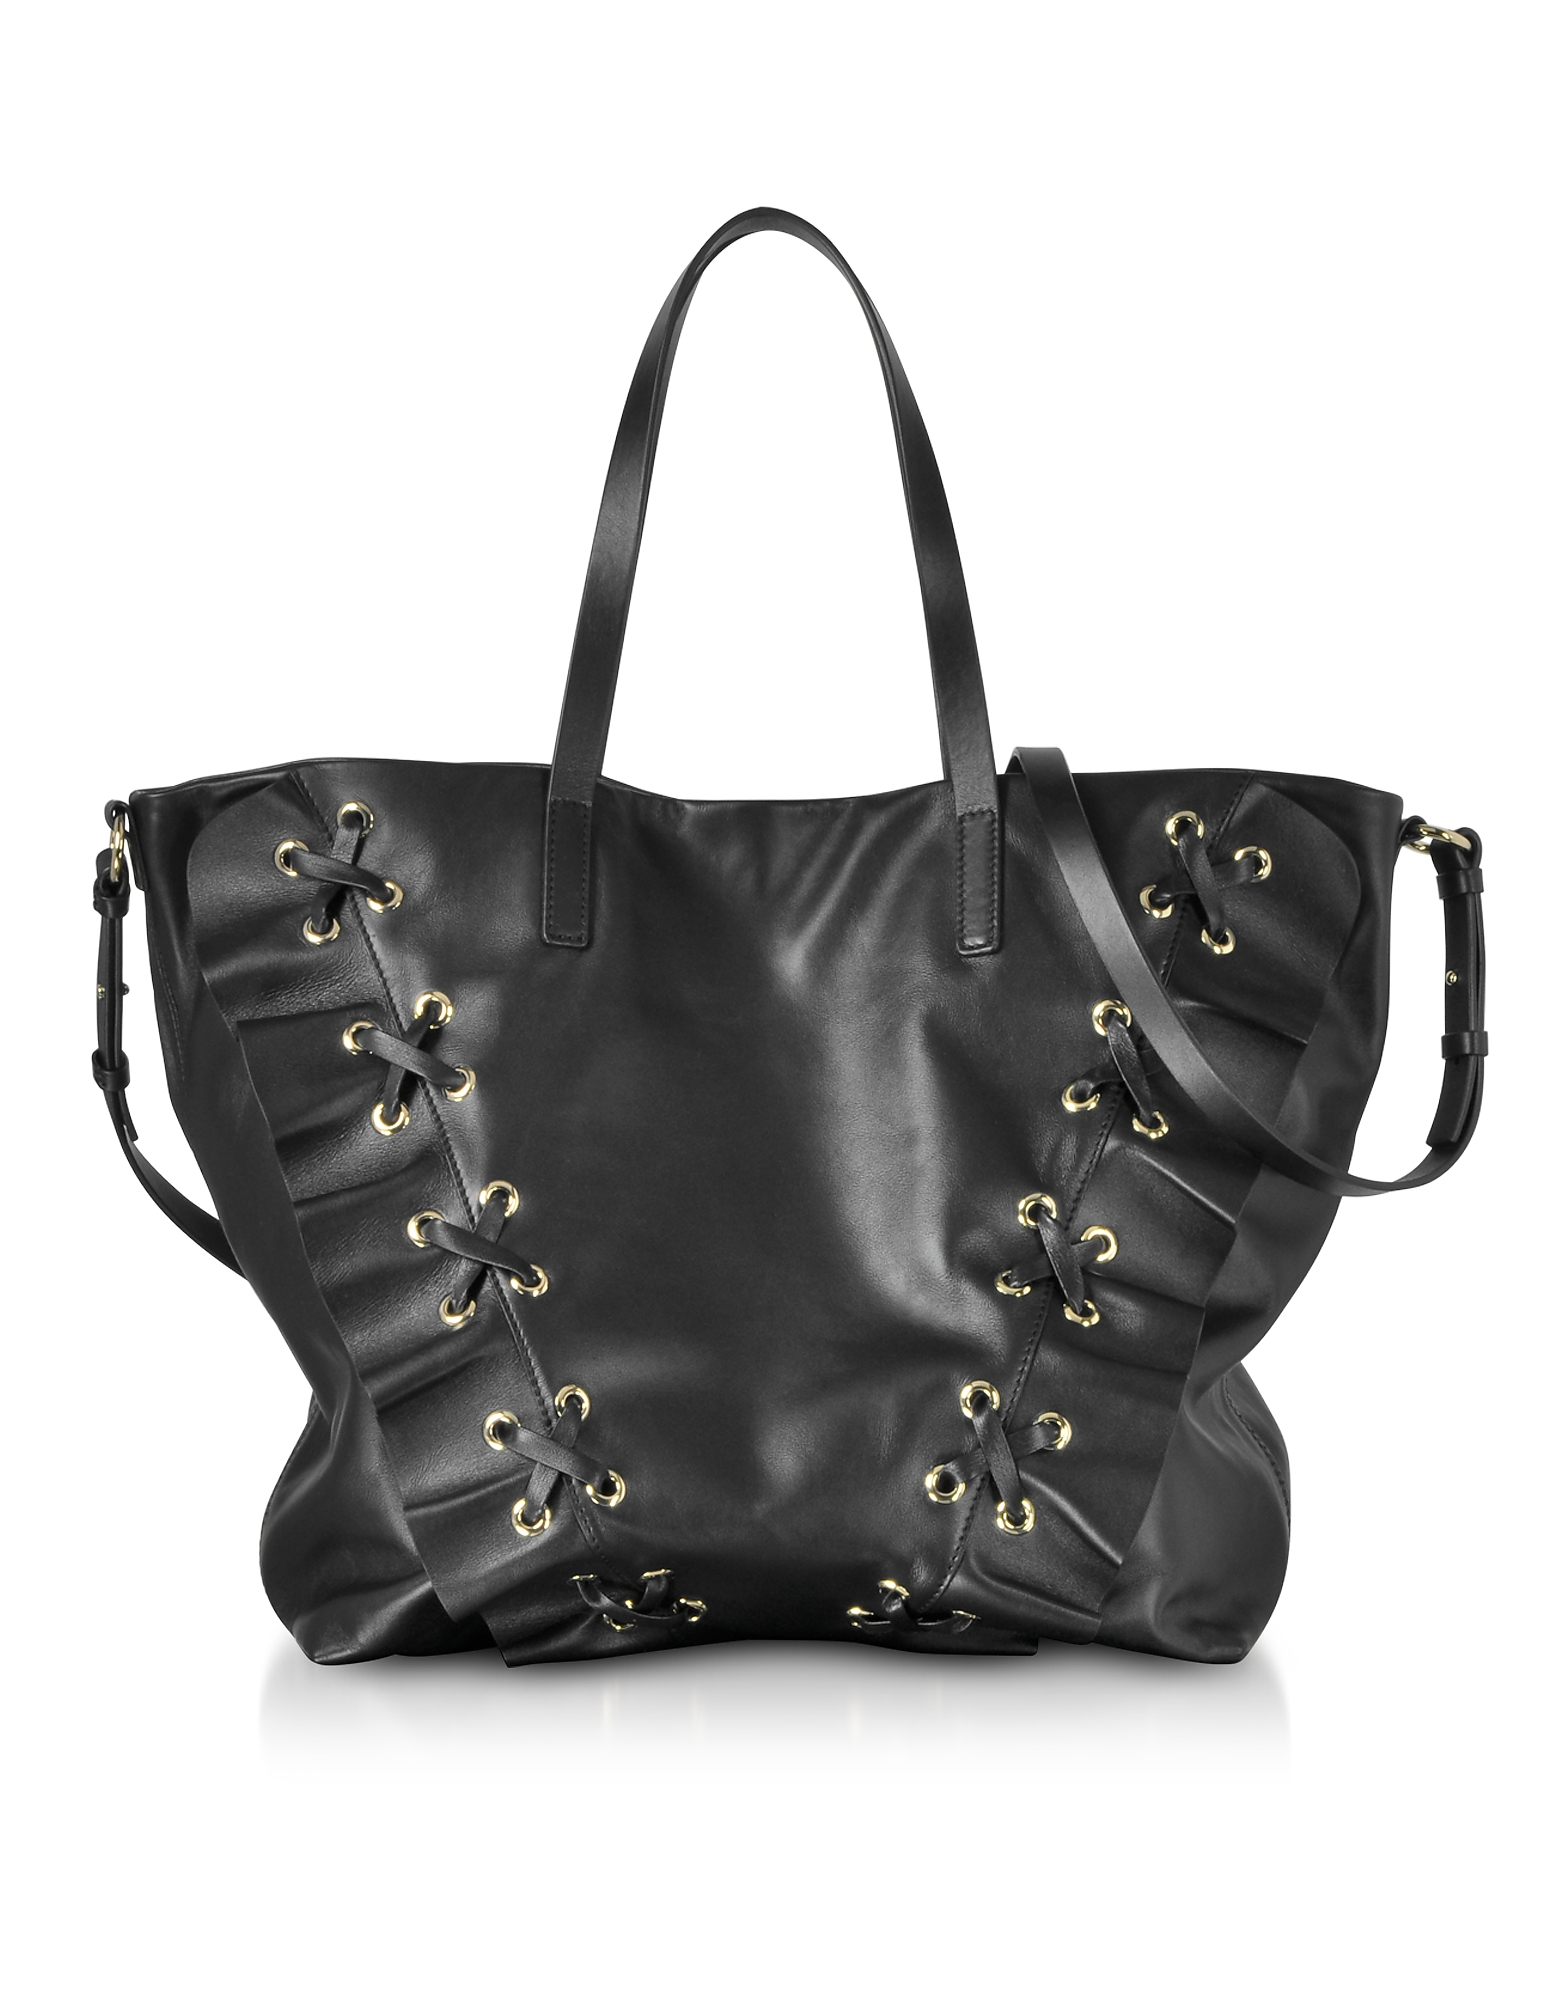 RED Valentino Handbags, Black Leather Ruffle Tote Bag